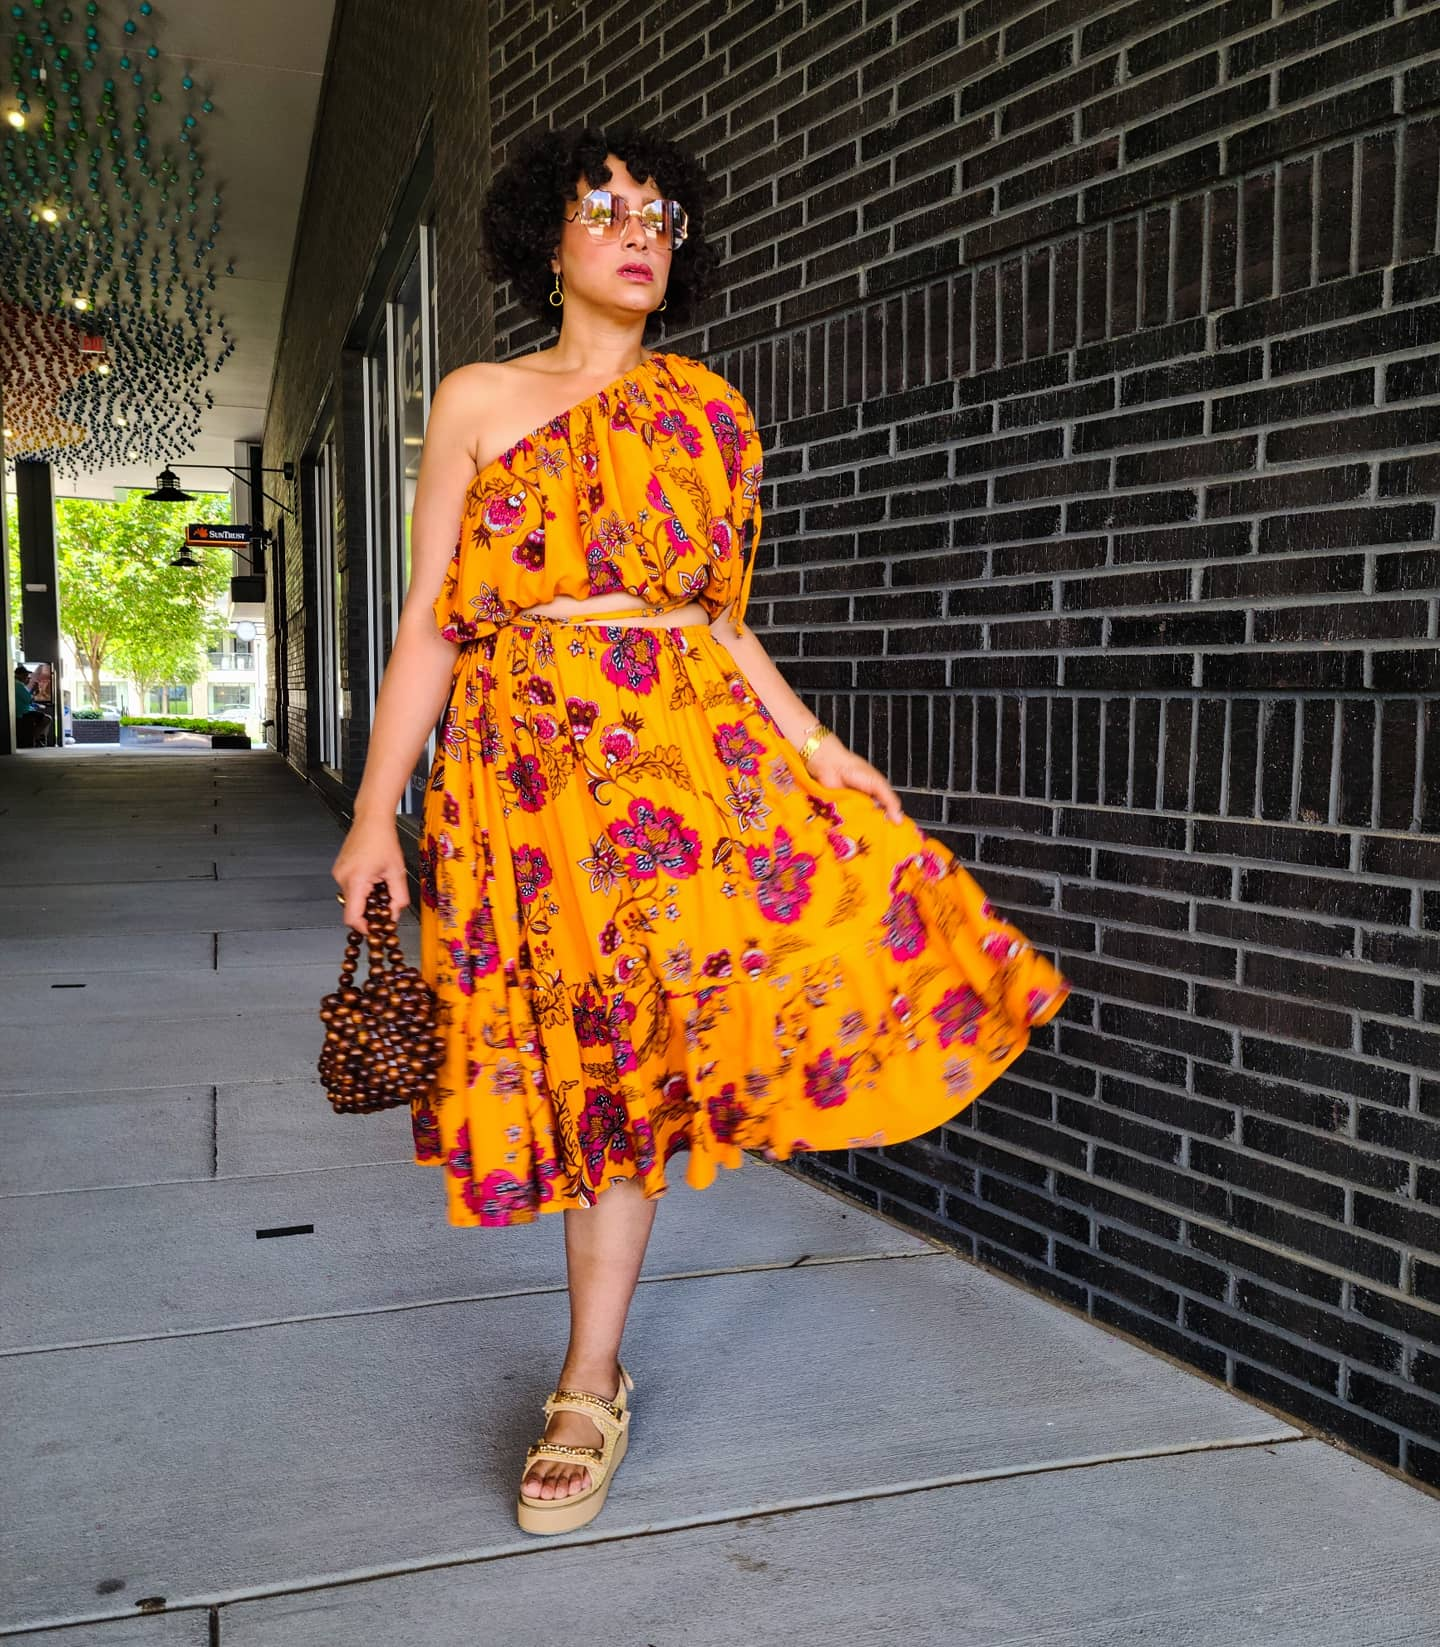 Marcia Spencer @keechiibstyle in yellow print dress